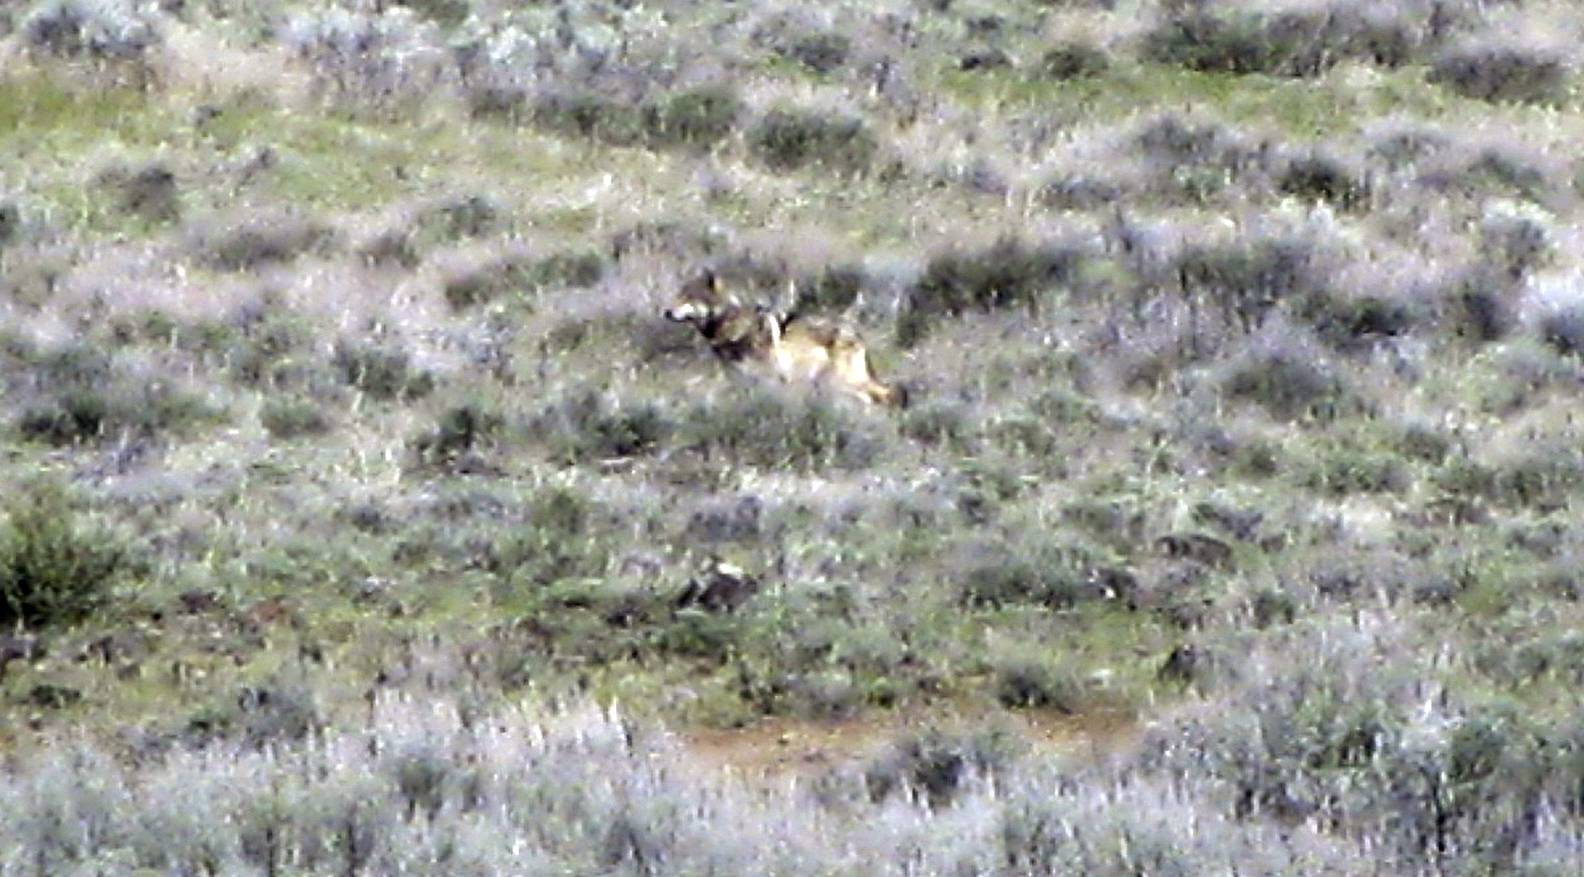 The Oregon wolf that has trekked across two states looking for a mate is seen in Modoc County, Calif.